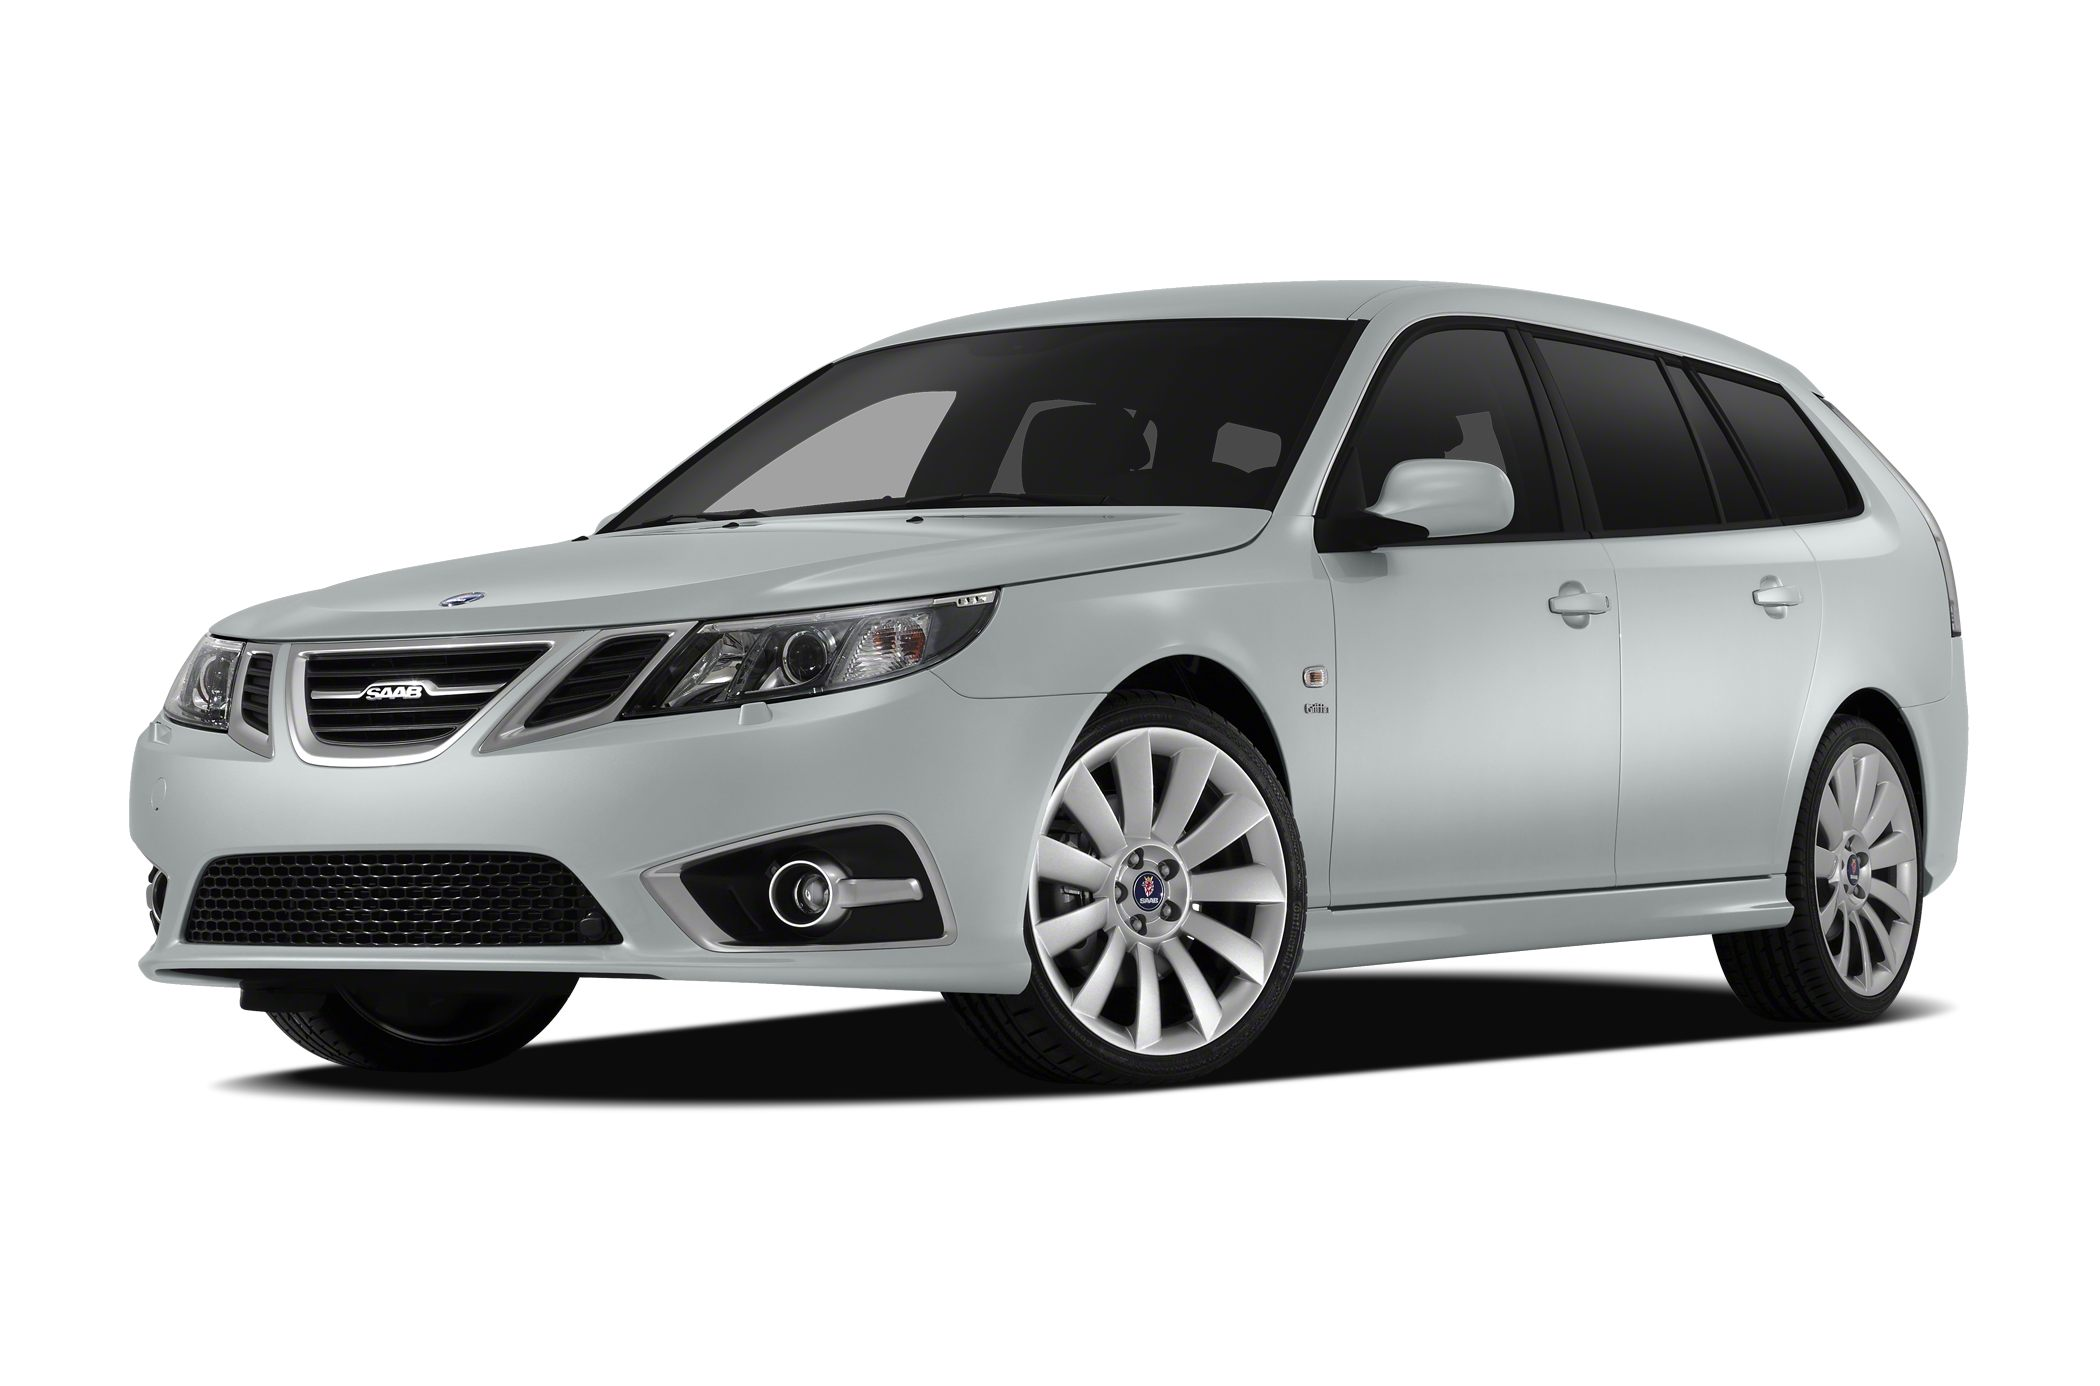 2012 Saab 9-3